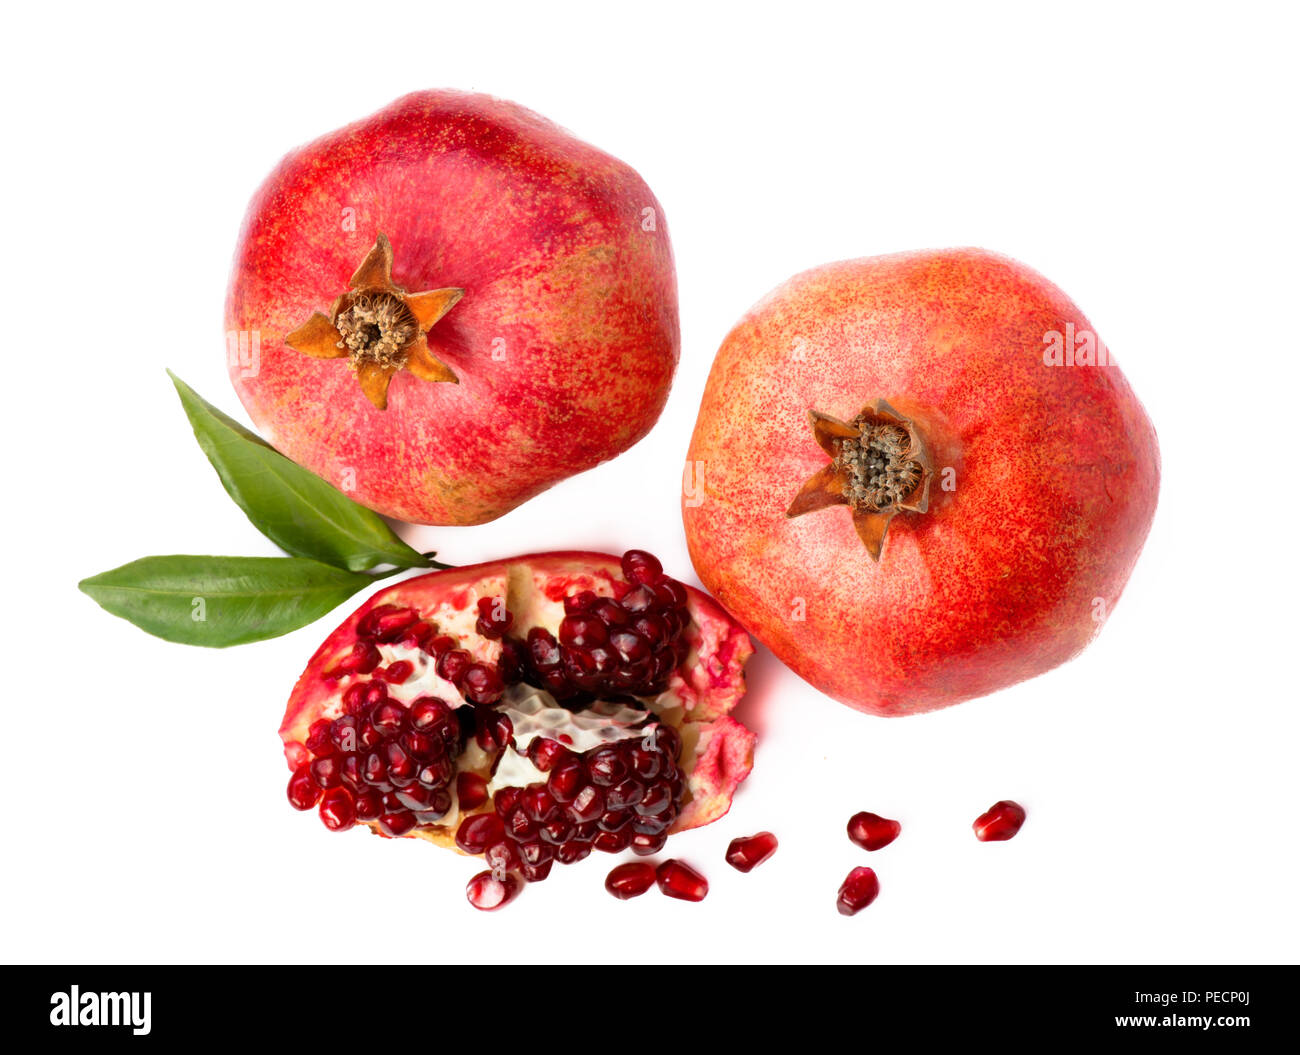 Pomegranate fruit isolated on white background. Slice. Top view. - Stock Image